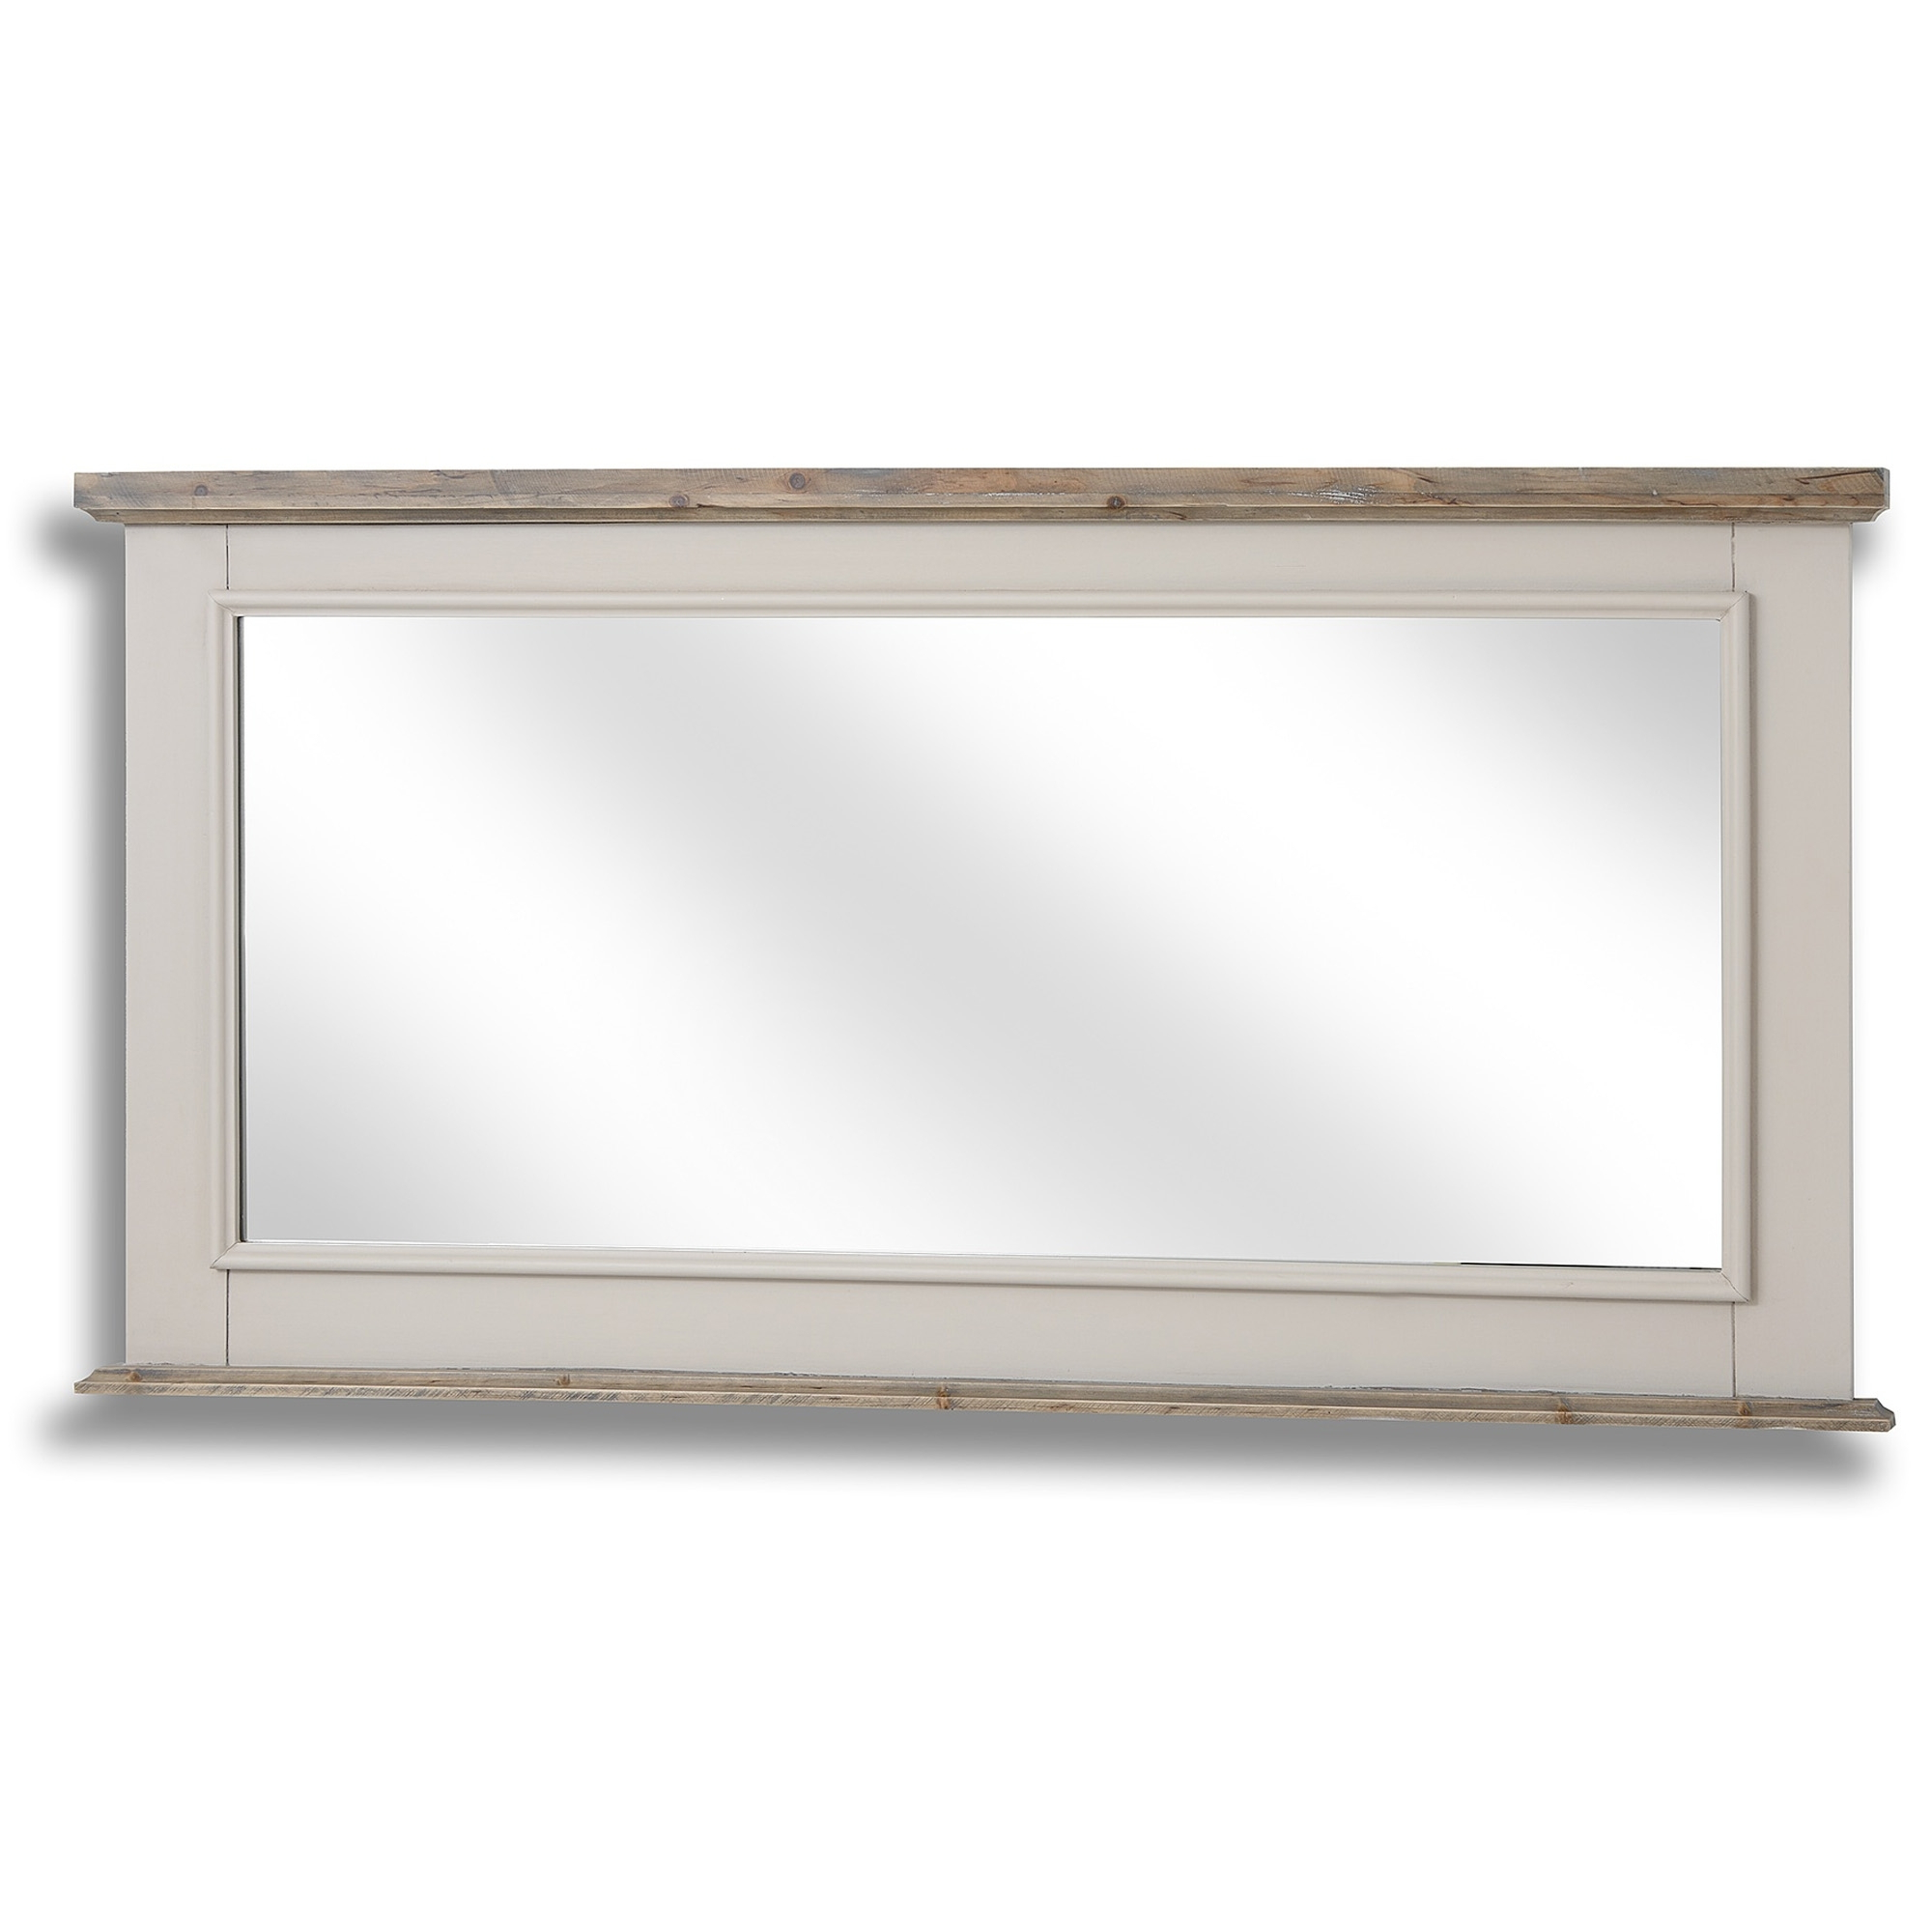 Best And Newest Studley Shabby Chic Landscape Wall Mirror Inside Landscape Wall Mirrors (View 4 of 20)